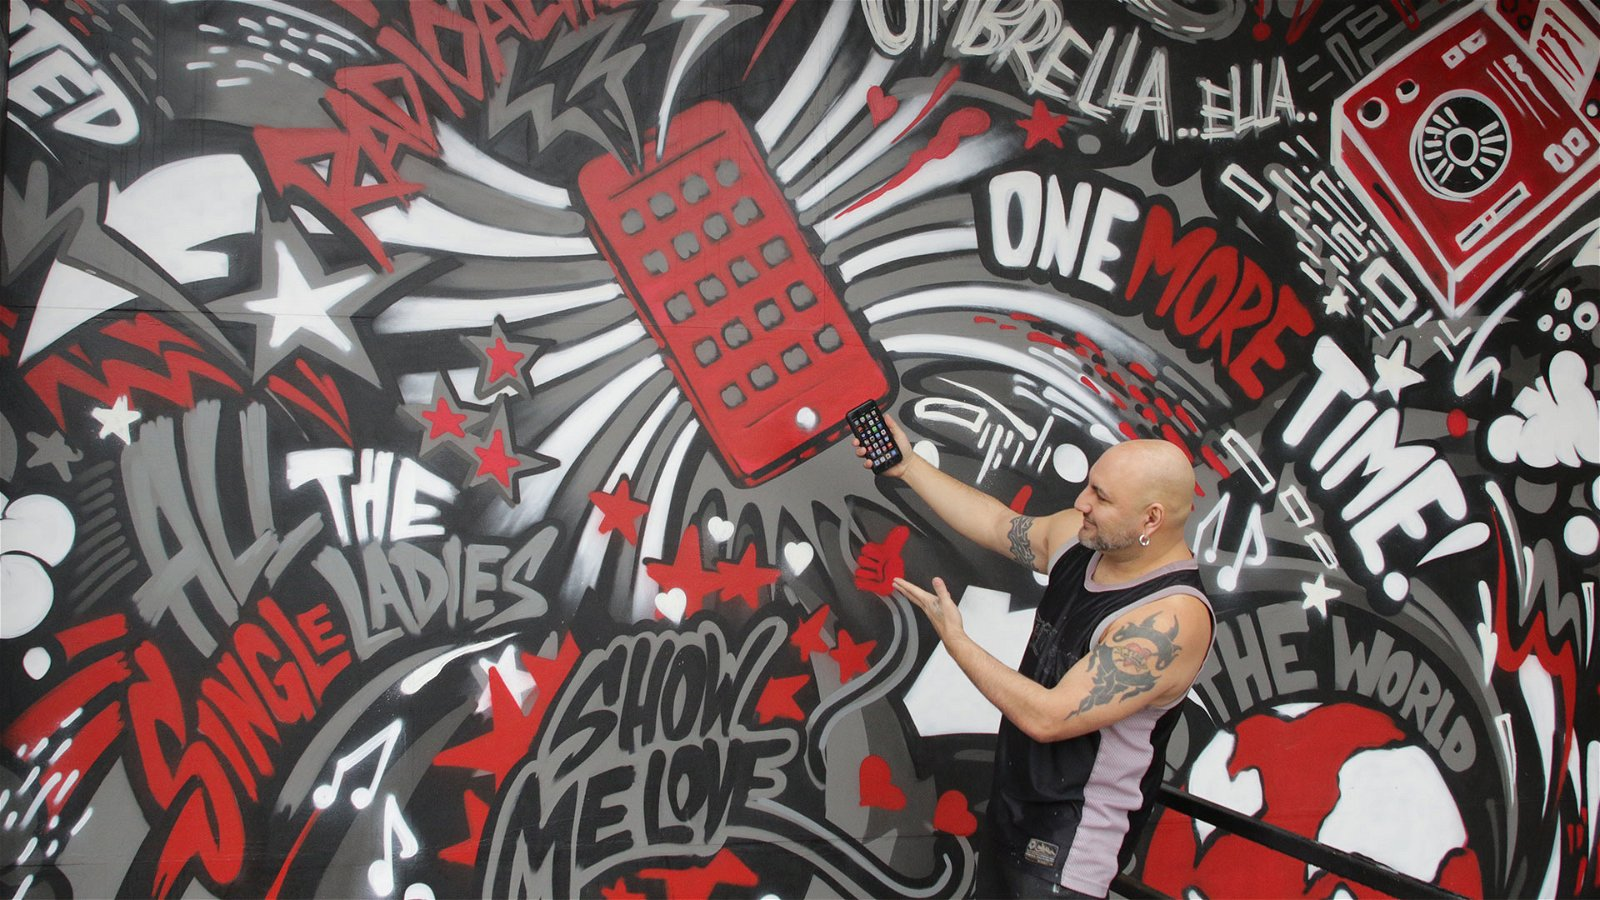 Technology Meets Graffiti - A Talk With Duro the Third 1